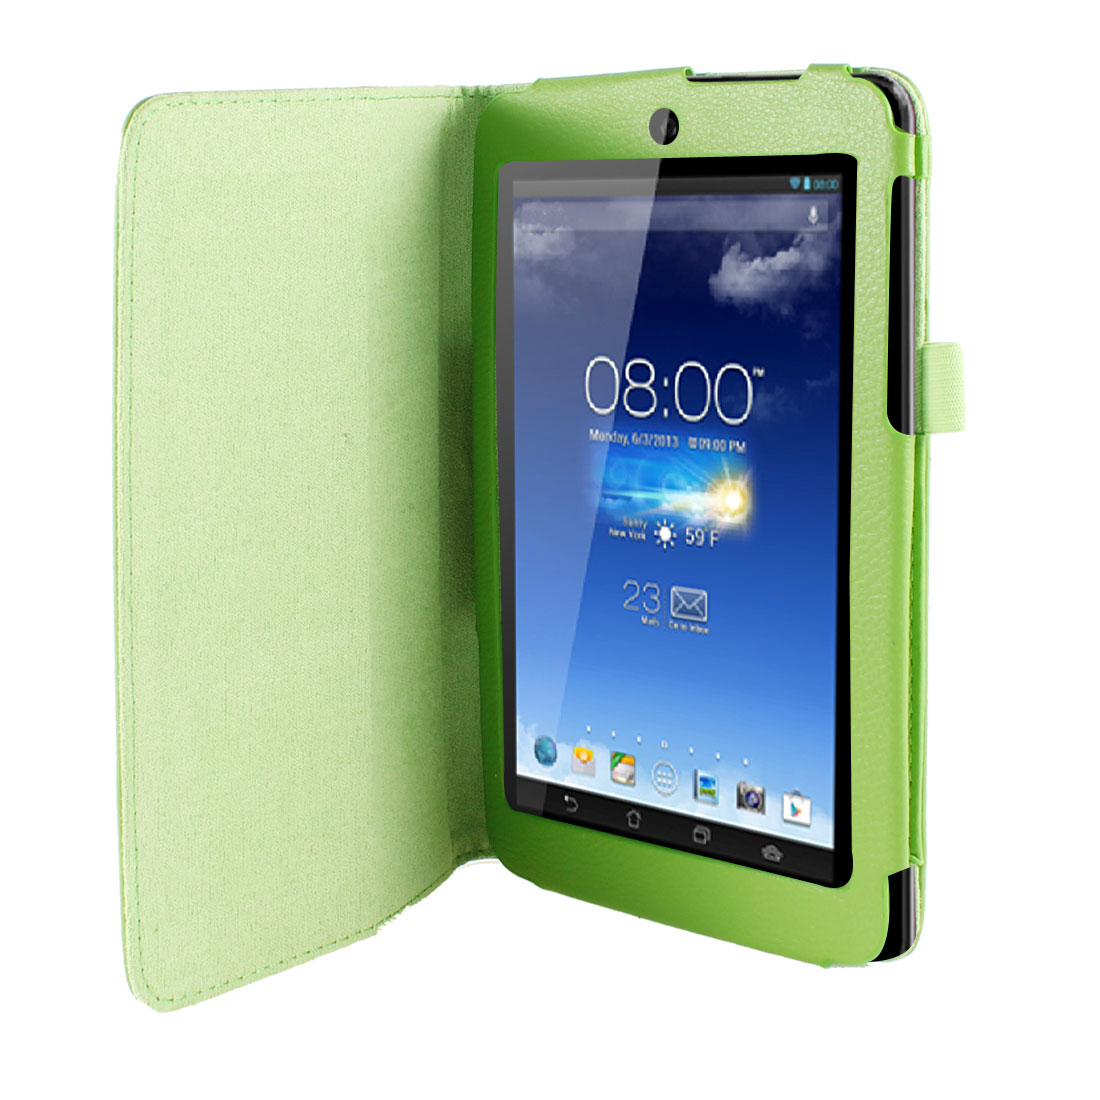 Stand Magnetic Flip Protective Case Cover Green for ASUS MeMO Pad HD 7 ME173X